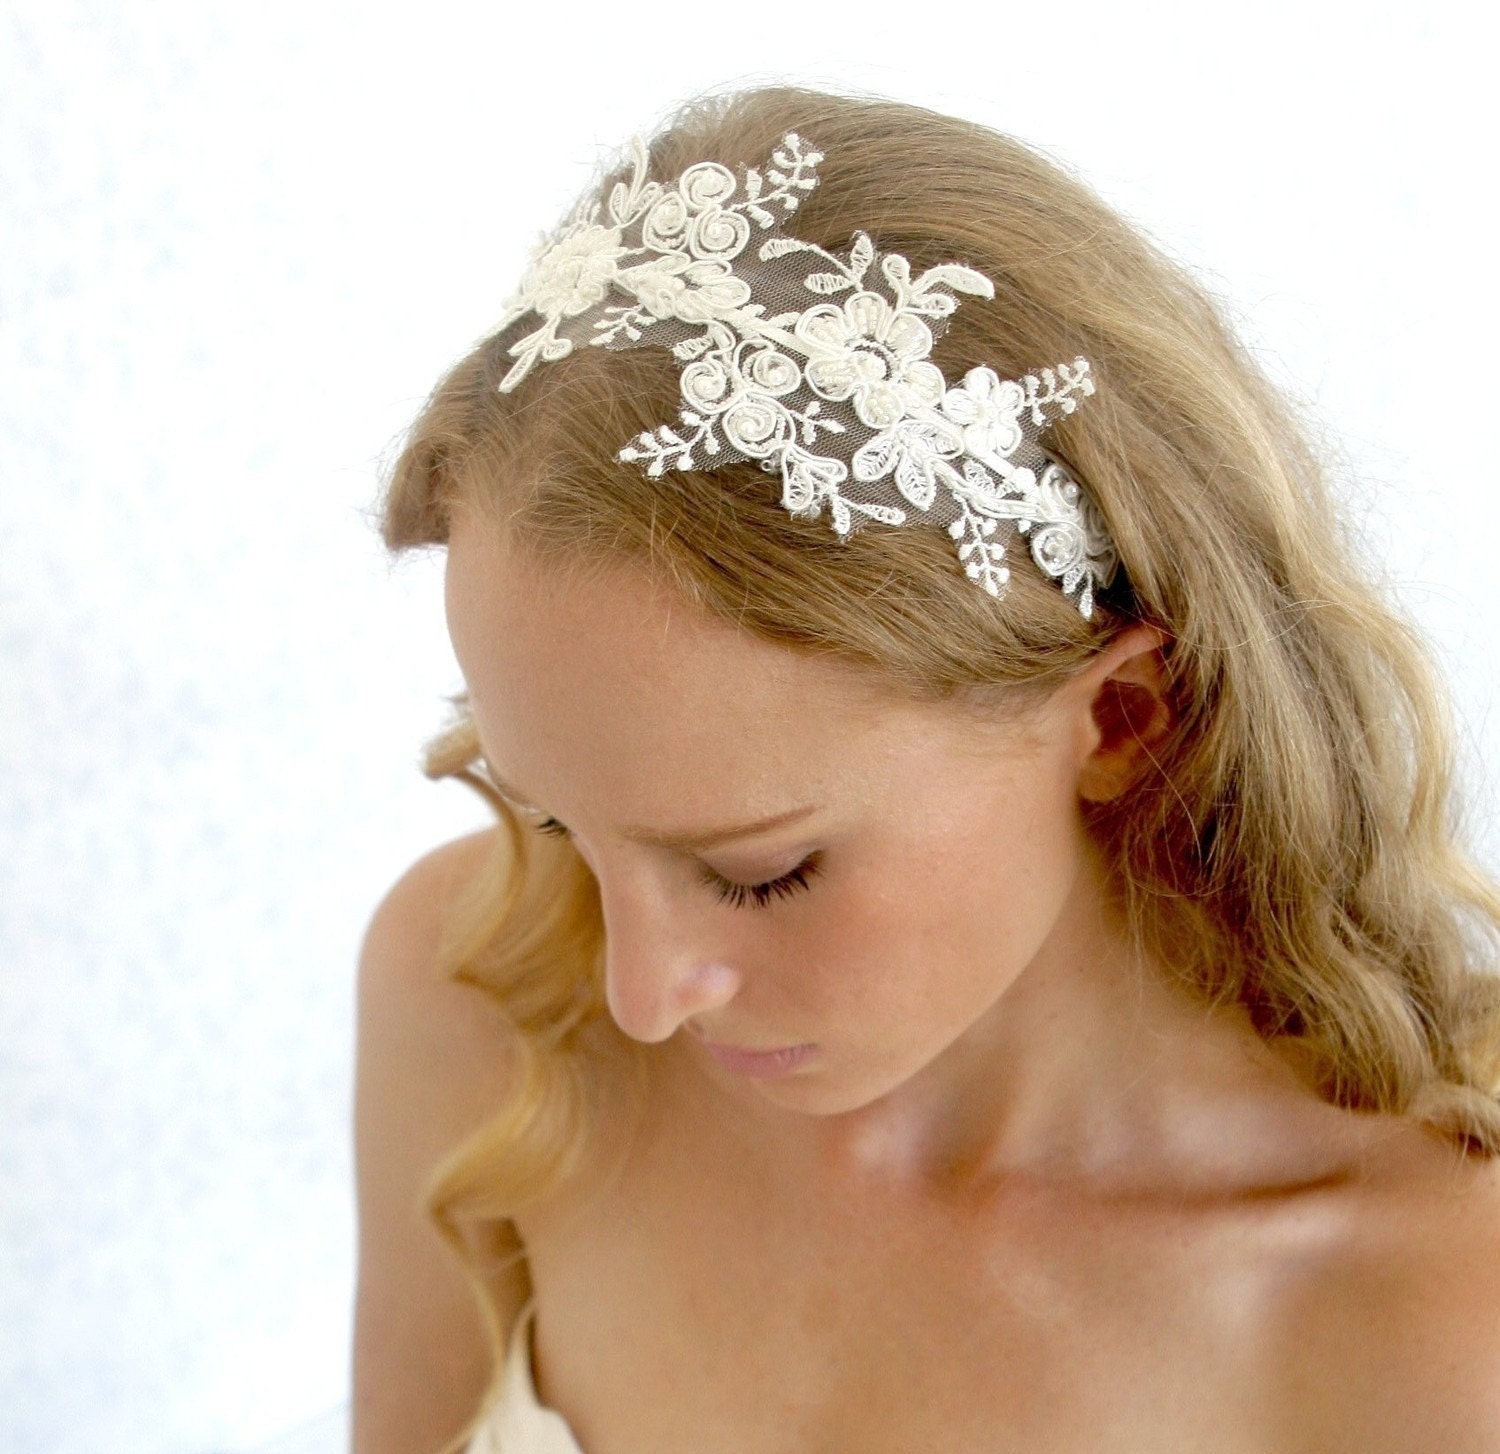 Wedding Headpieces For Bride: Lace Headpiece Bridal Ivory Beaded Lace With Pearls Wedding